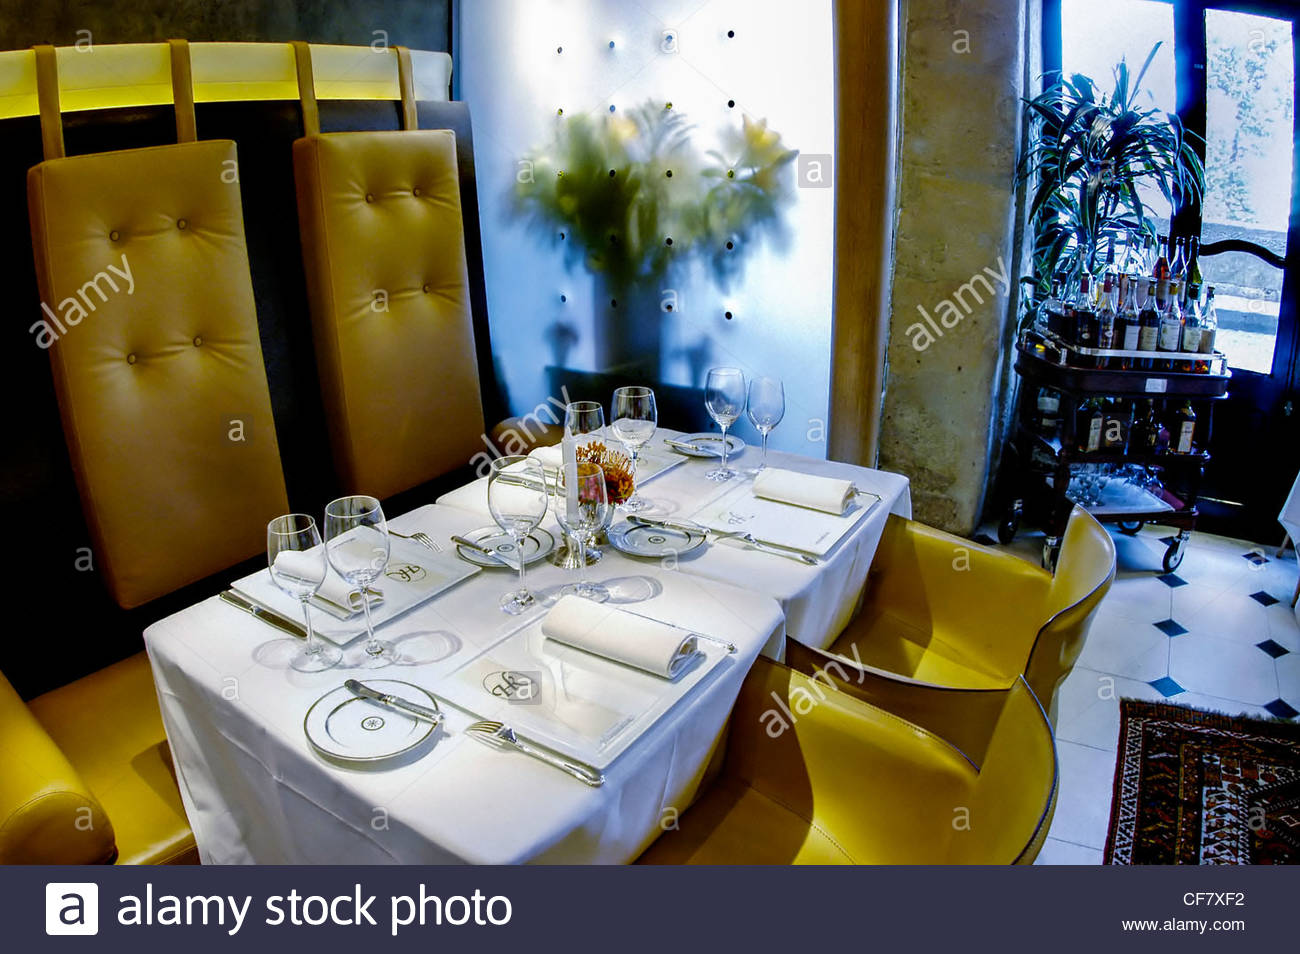 paris france haute cuisine restaurant hiramatsu stock photo royalty free image 43815046. Black Bedroom Furniture Sets. Home Design Ideas